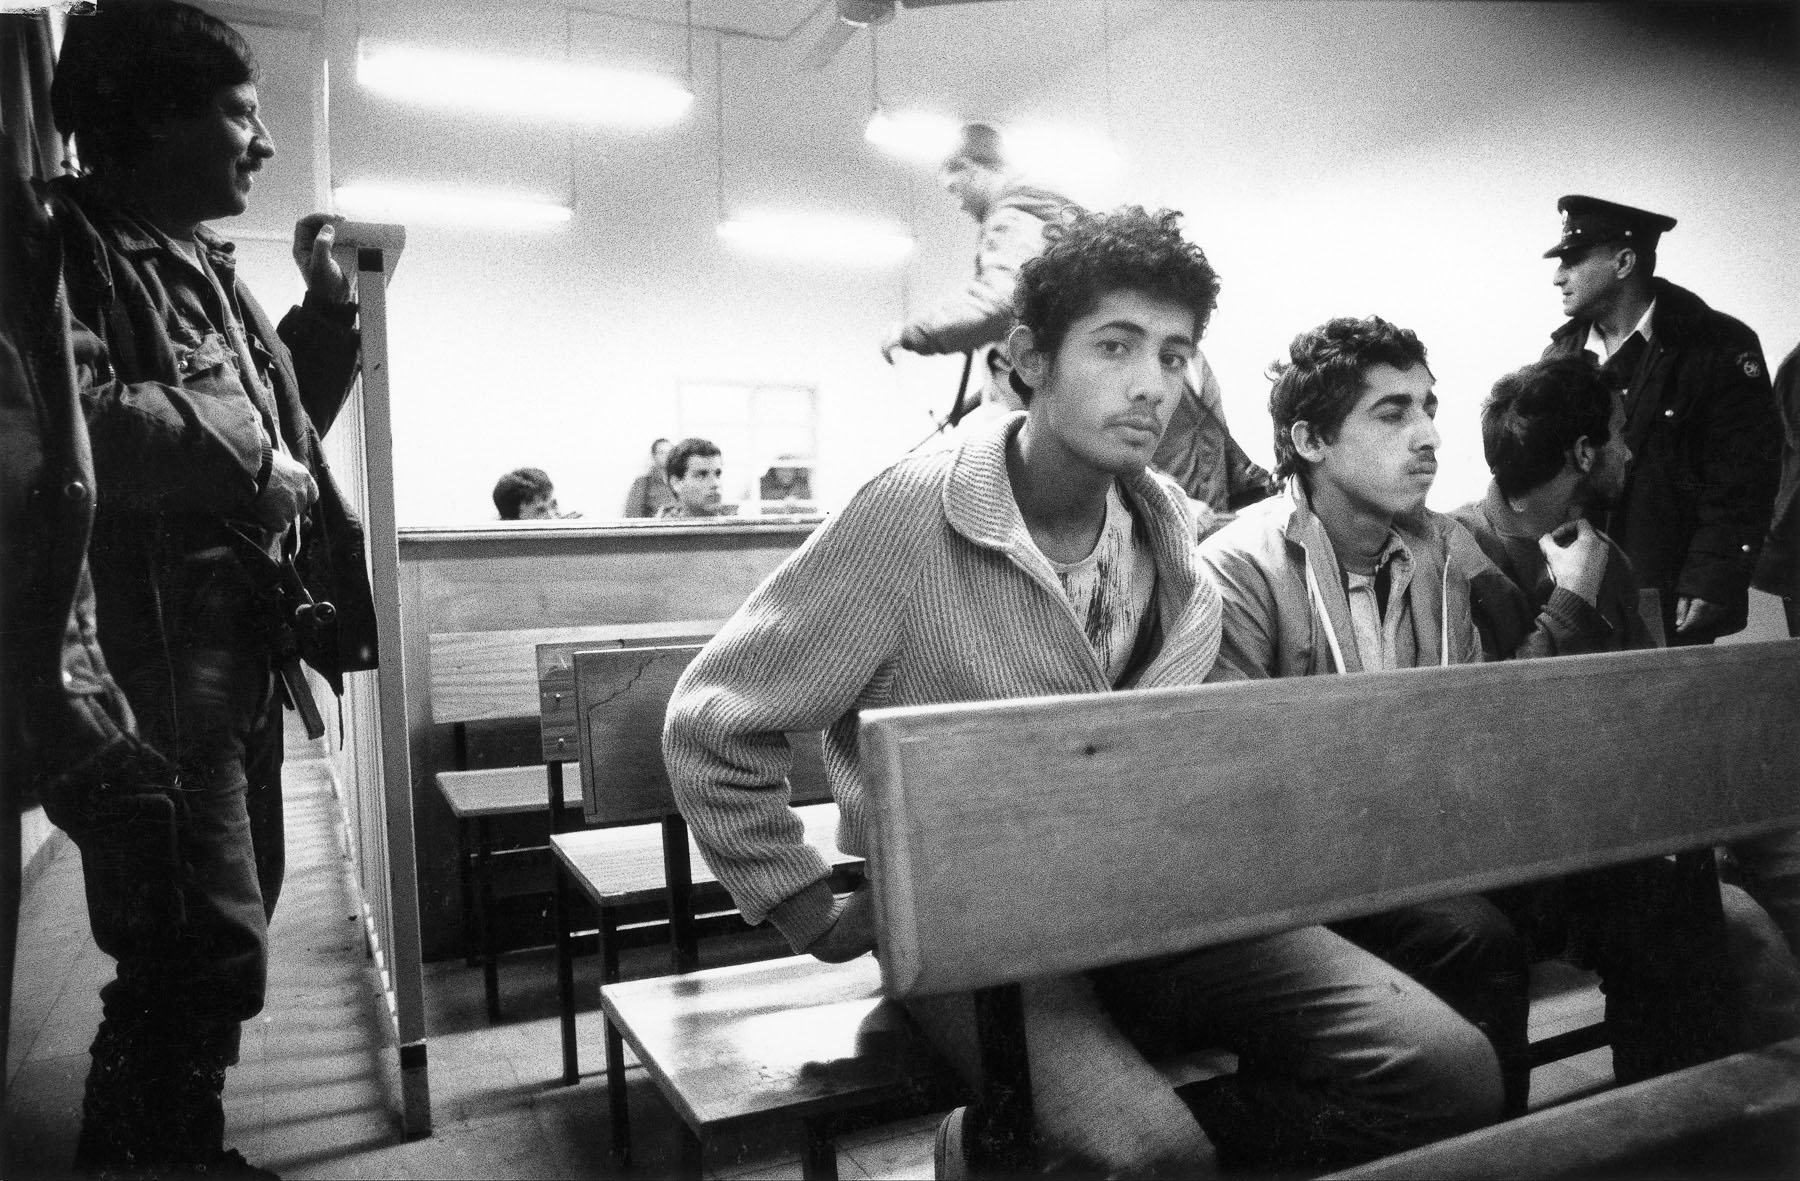 Young Palestinians in an Israelian military court in December 1987